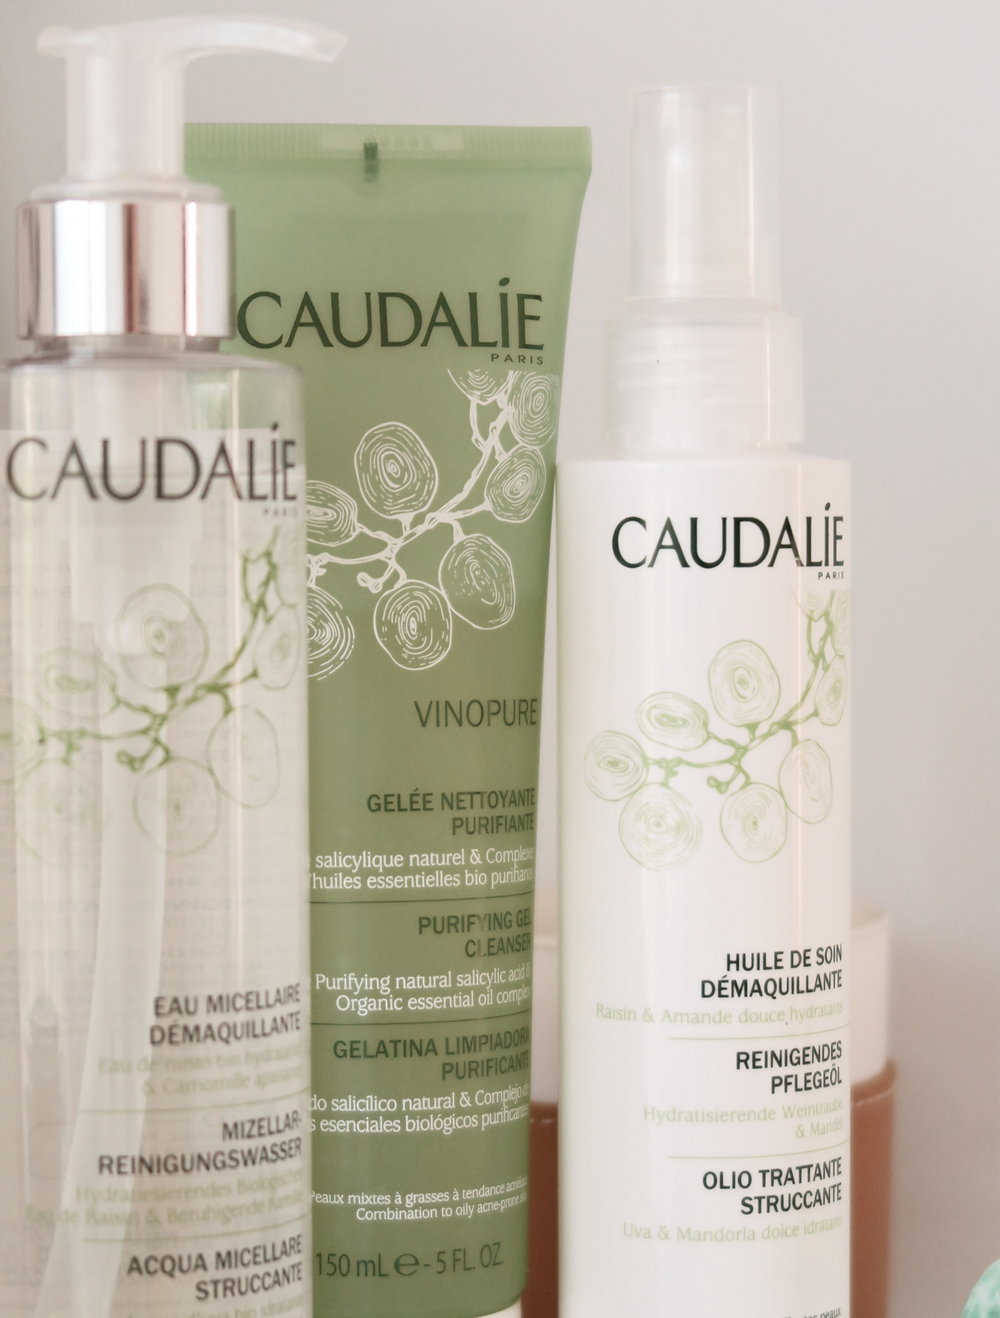 Double-Cleansing Routine Feat. Caudalie